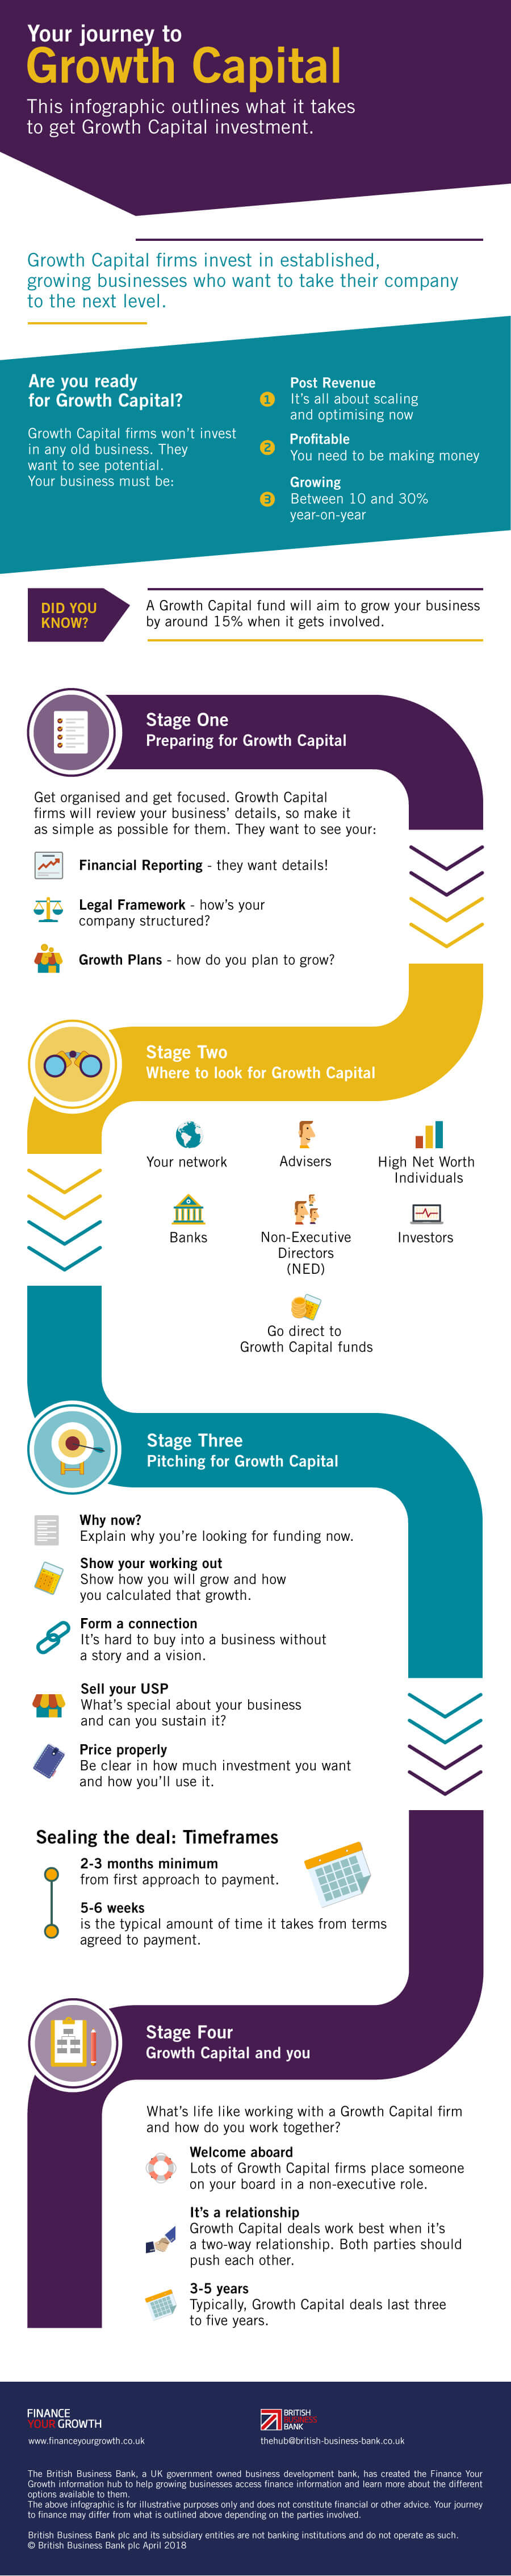 Understanding the Expansion Capital journey